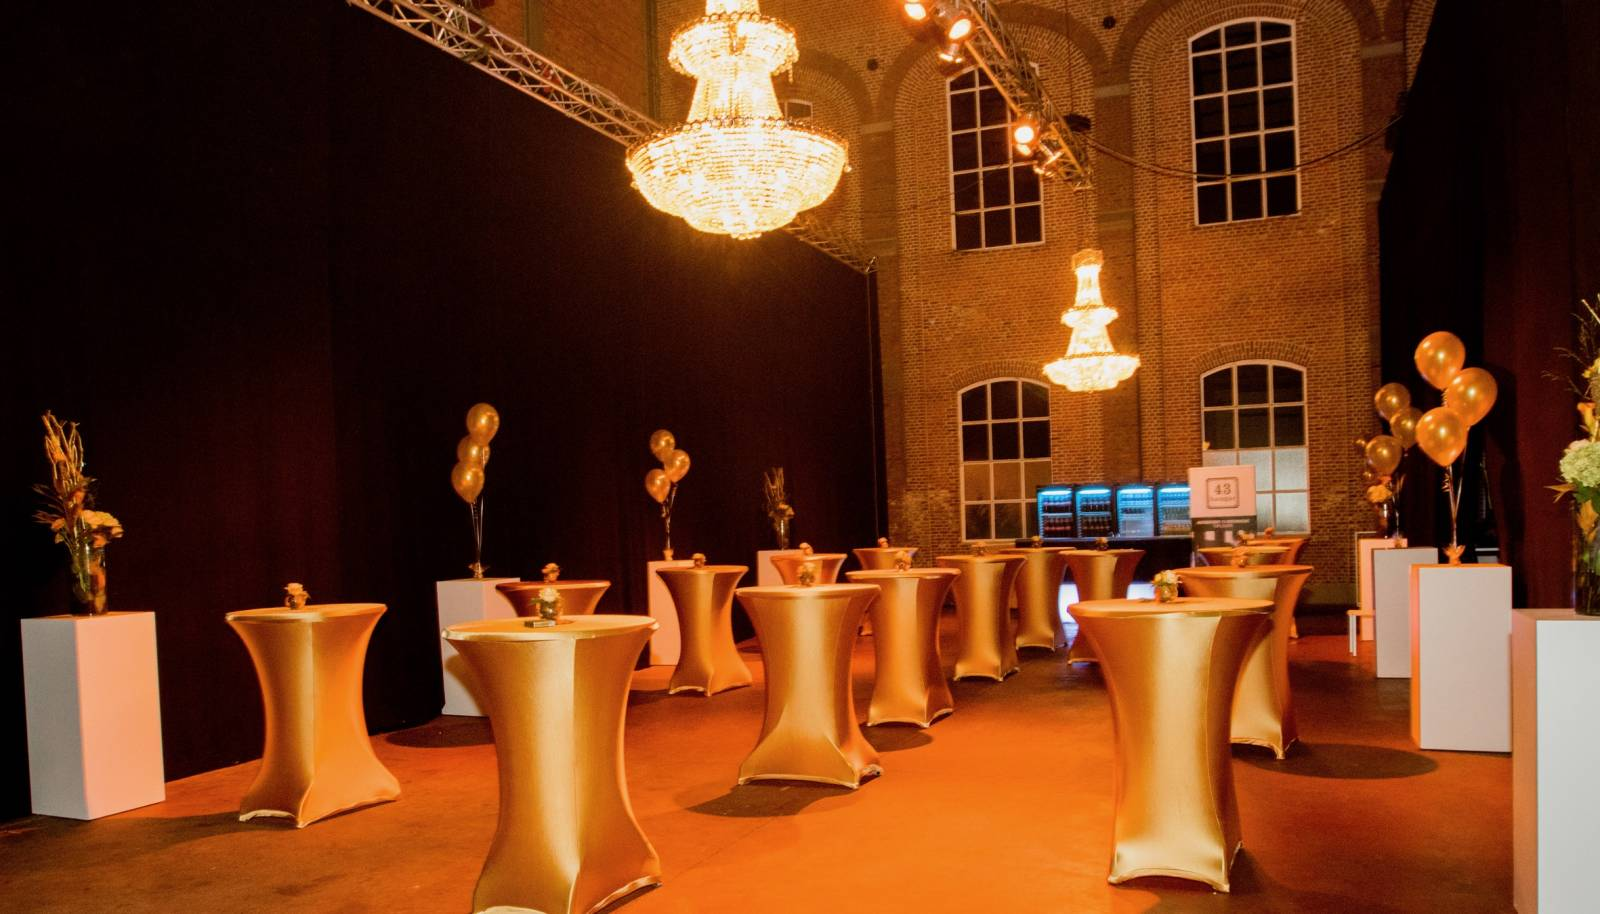 Hangar 43 - Feestzaal Oost-Vlaanderen - Industrieel - House of Weddings - 13